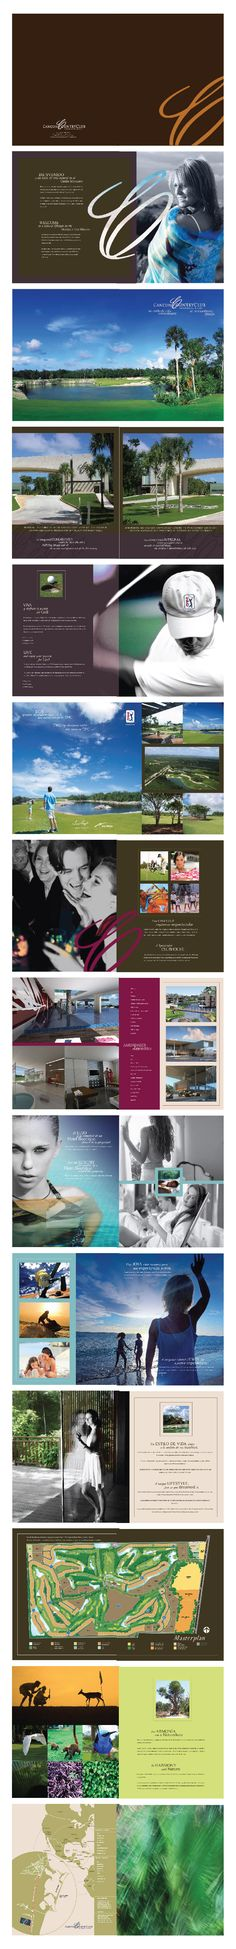 Cancun Country Club - Brochure